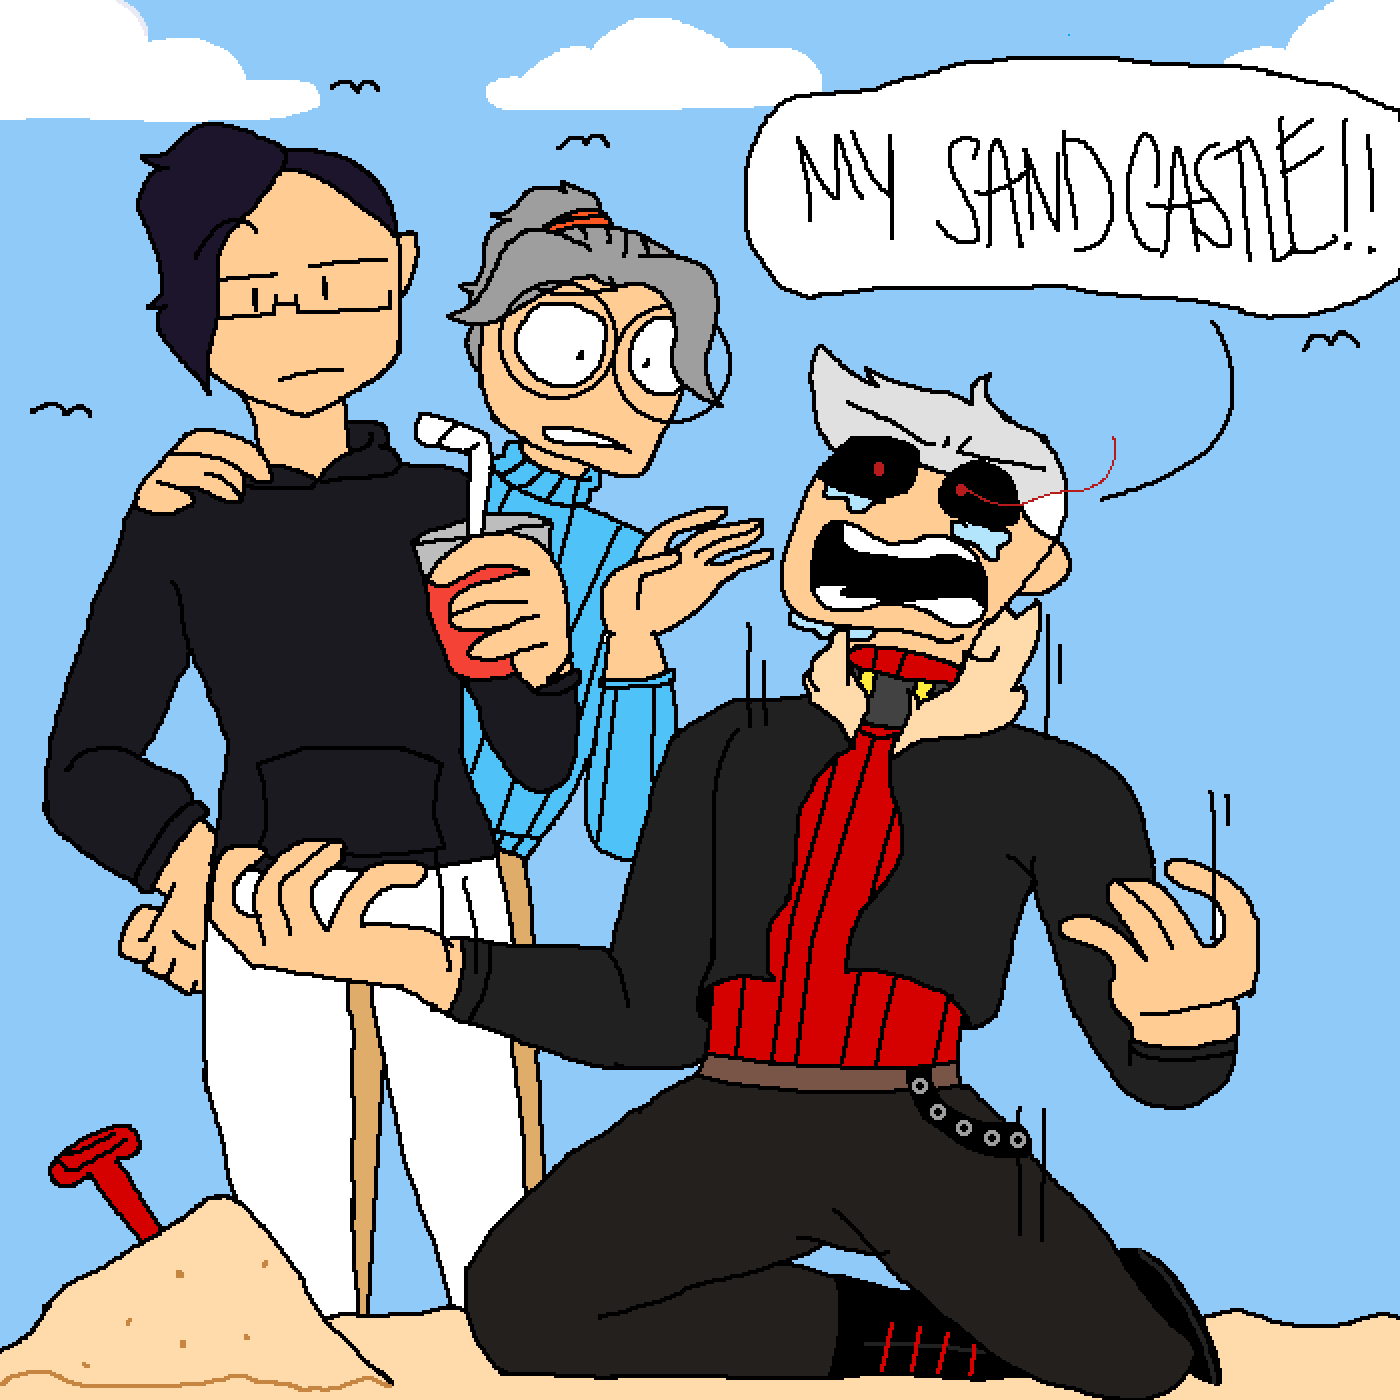 Oh no his sand castle  by science-san